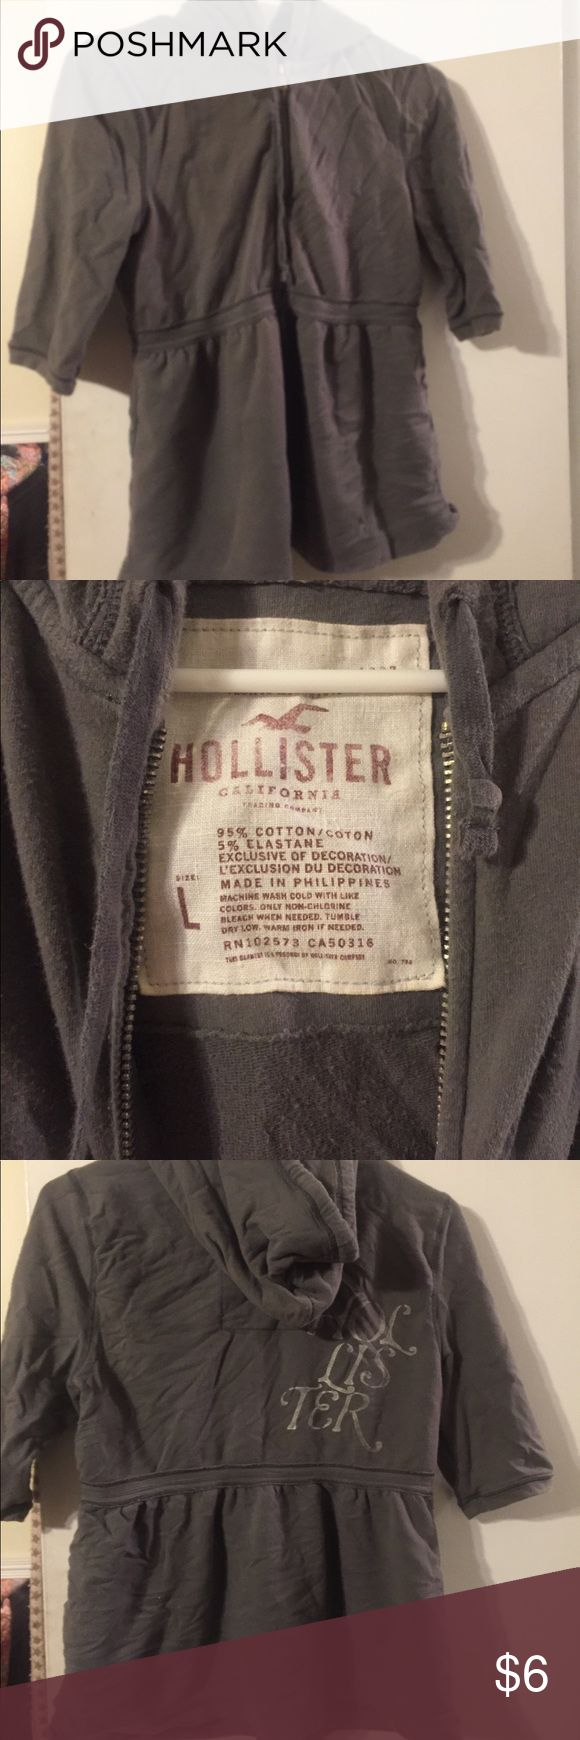 Hollister Jacket Grey short sleeve Hollister hoodie size large. Worn but still in good condition. Hollister Jackets & Coats